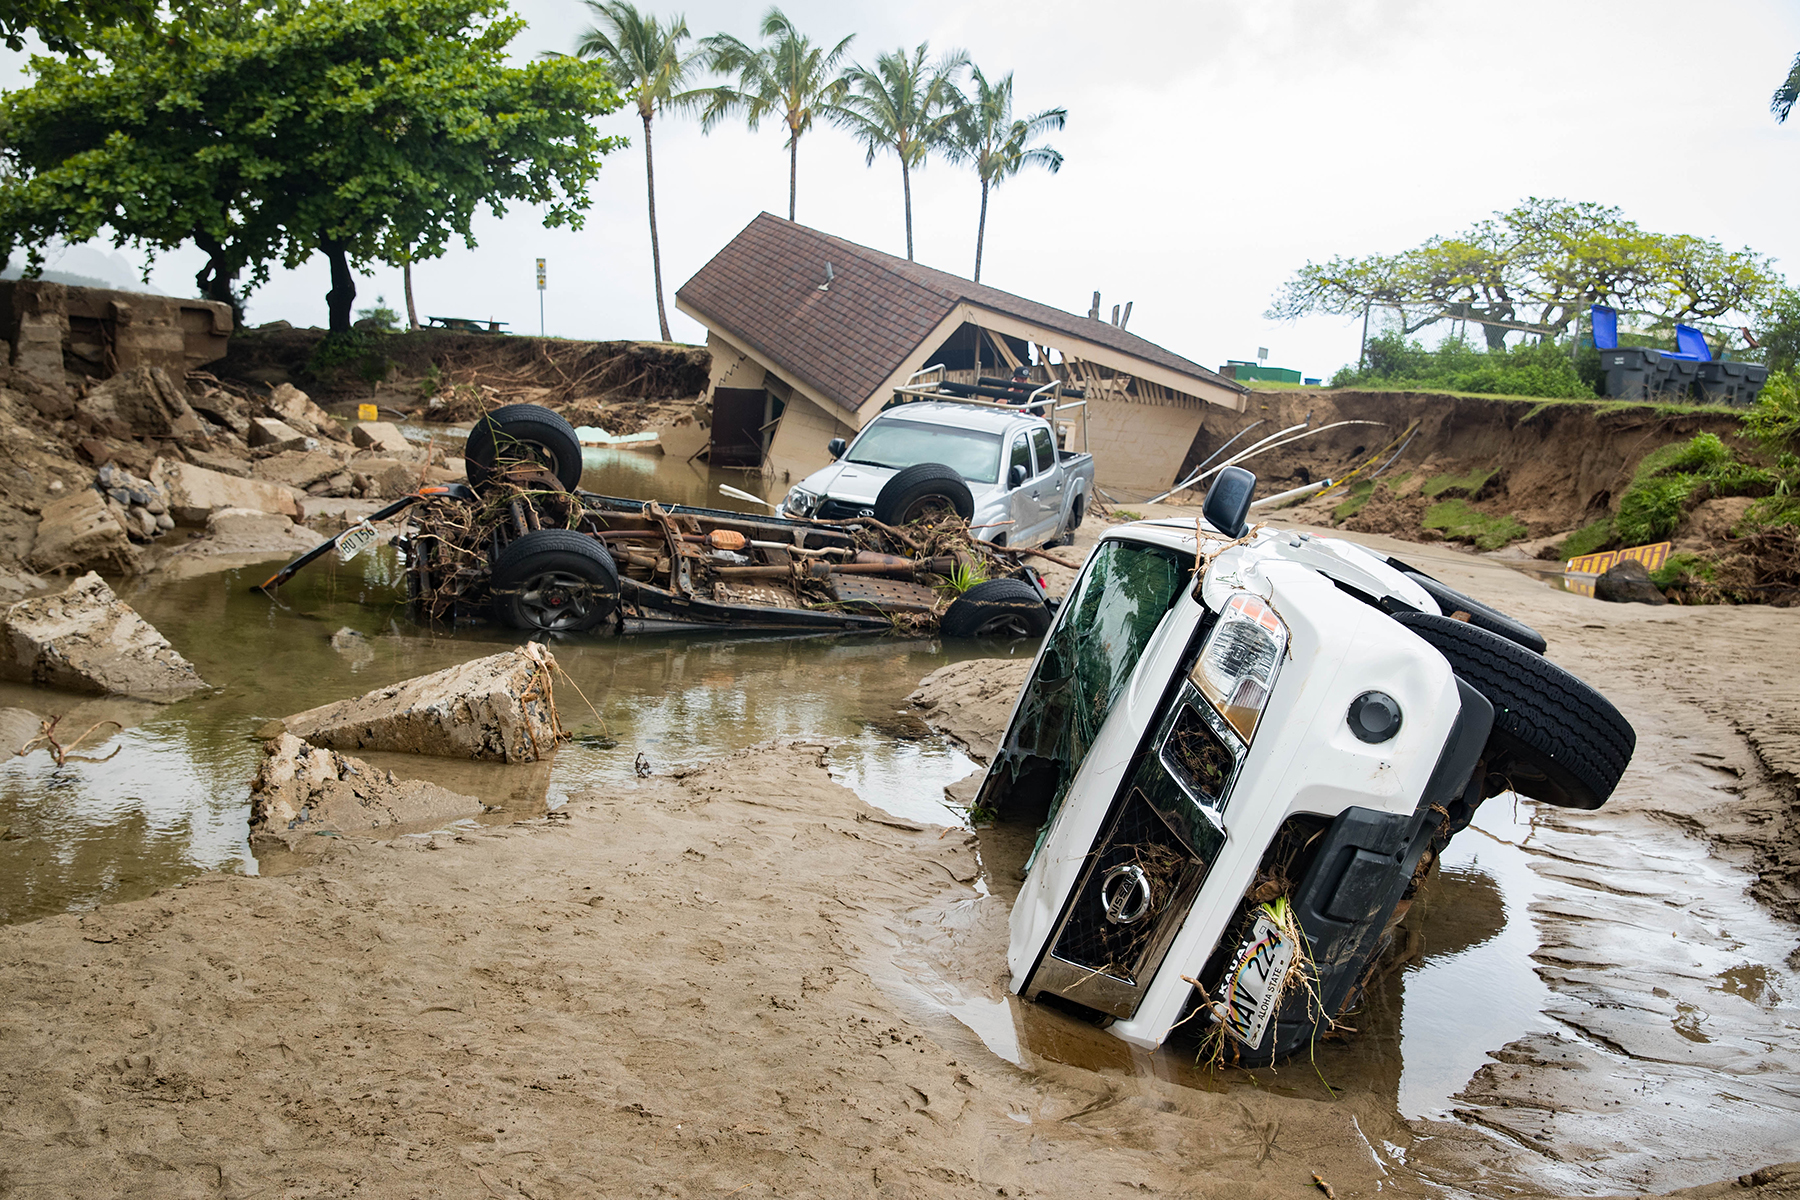 <p><strong>LONGTERM RAMIFICATIONS:</strong> Flash floods toppled vehicles and public restrooms near the entrance to Hanalei Pier. At year's end, there is still limited access to some portions of Kauai's North Shore. / Anthony Quintano</p>